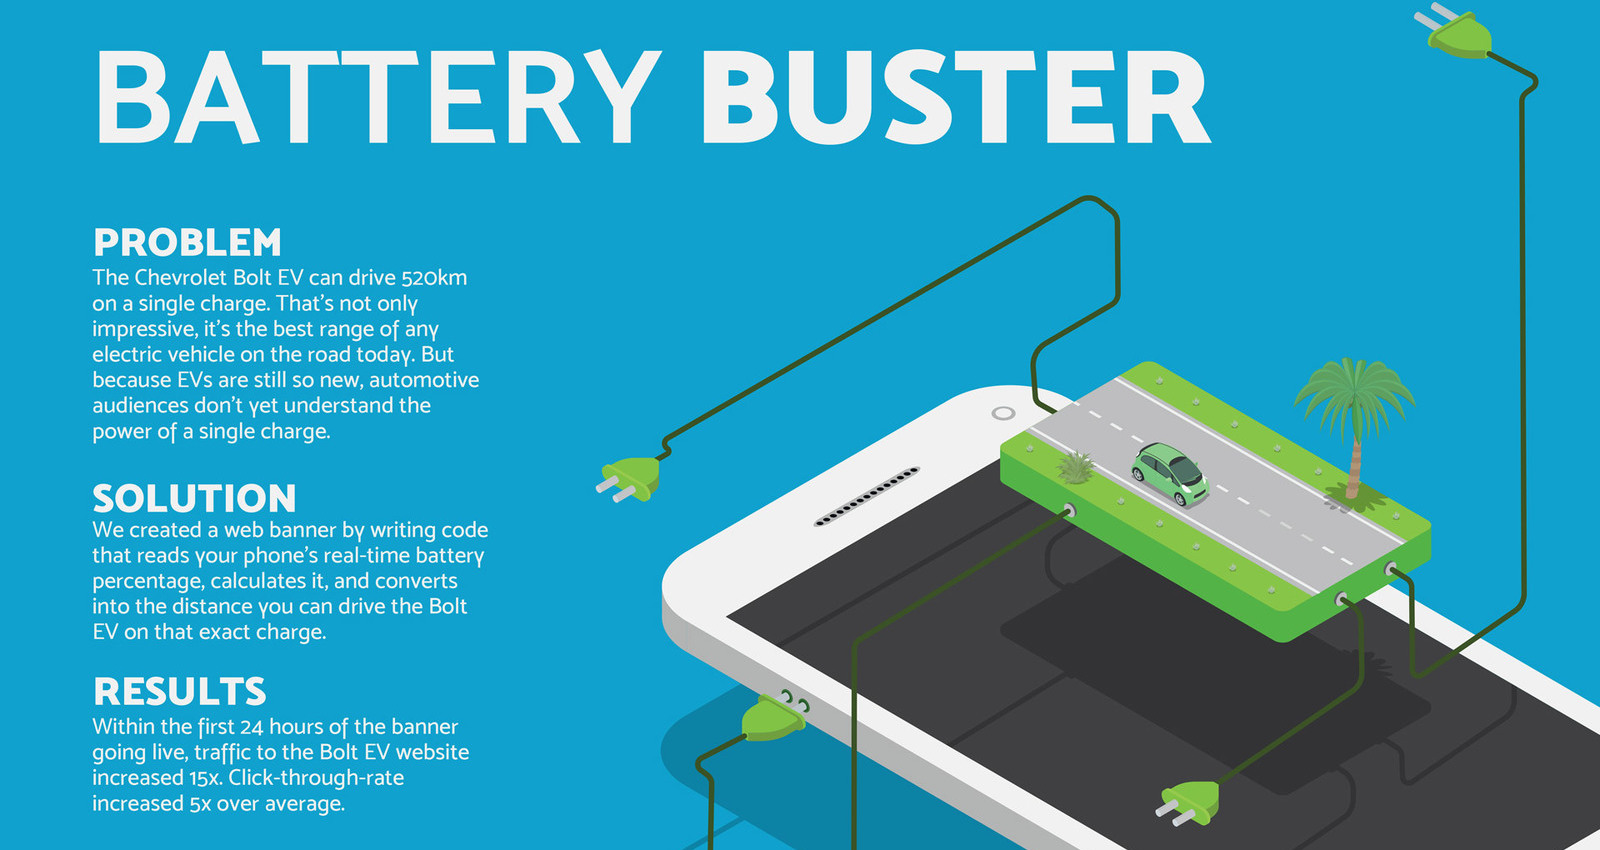 Battery Buster